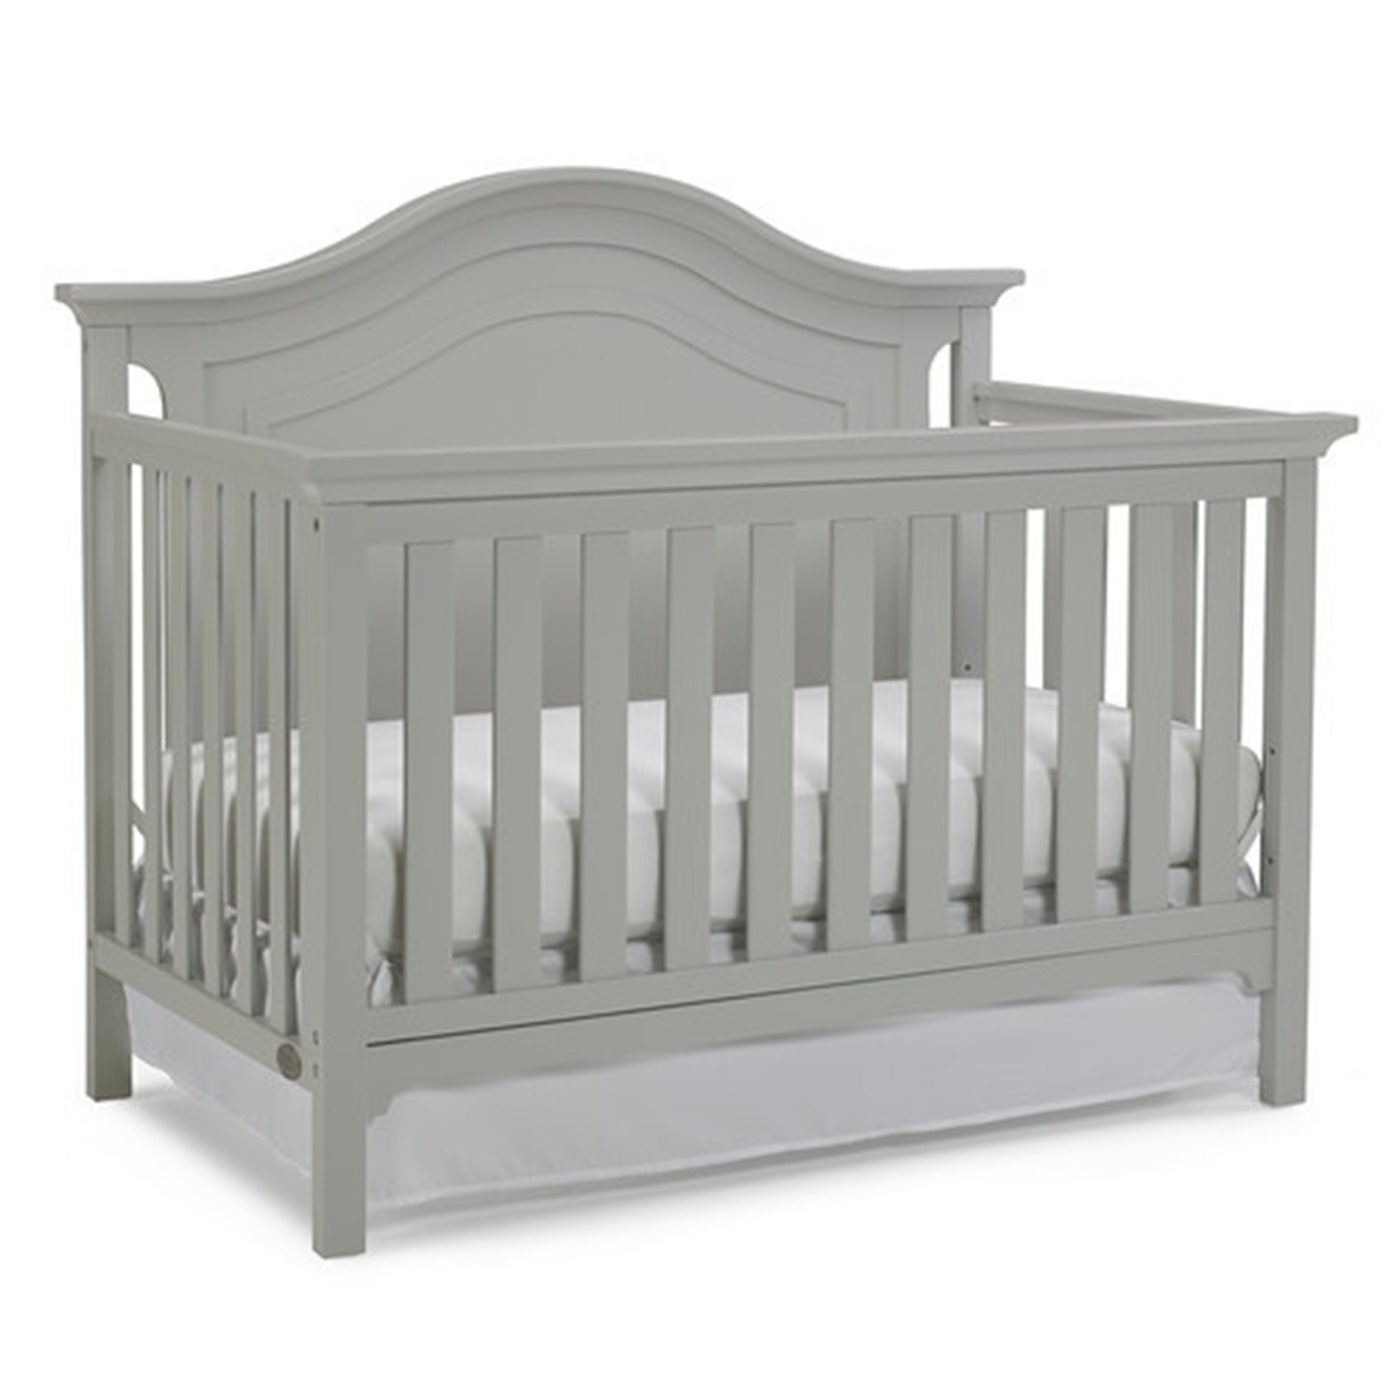 baby new nursery full in furniture white itm toddler cribs crib bed convertible